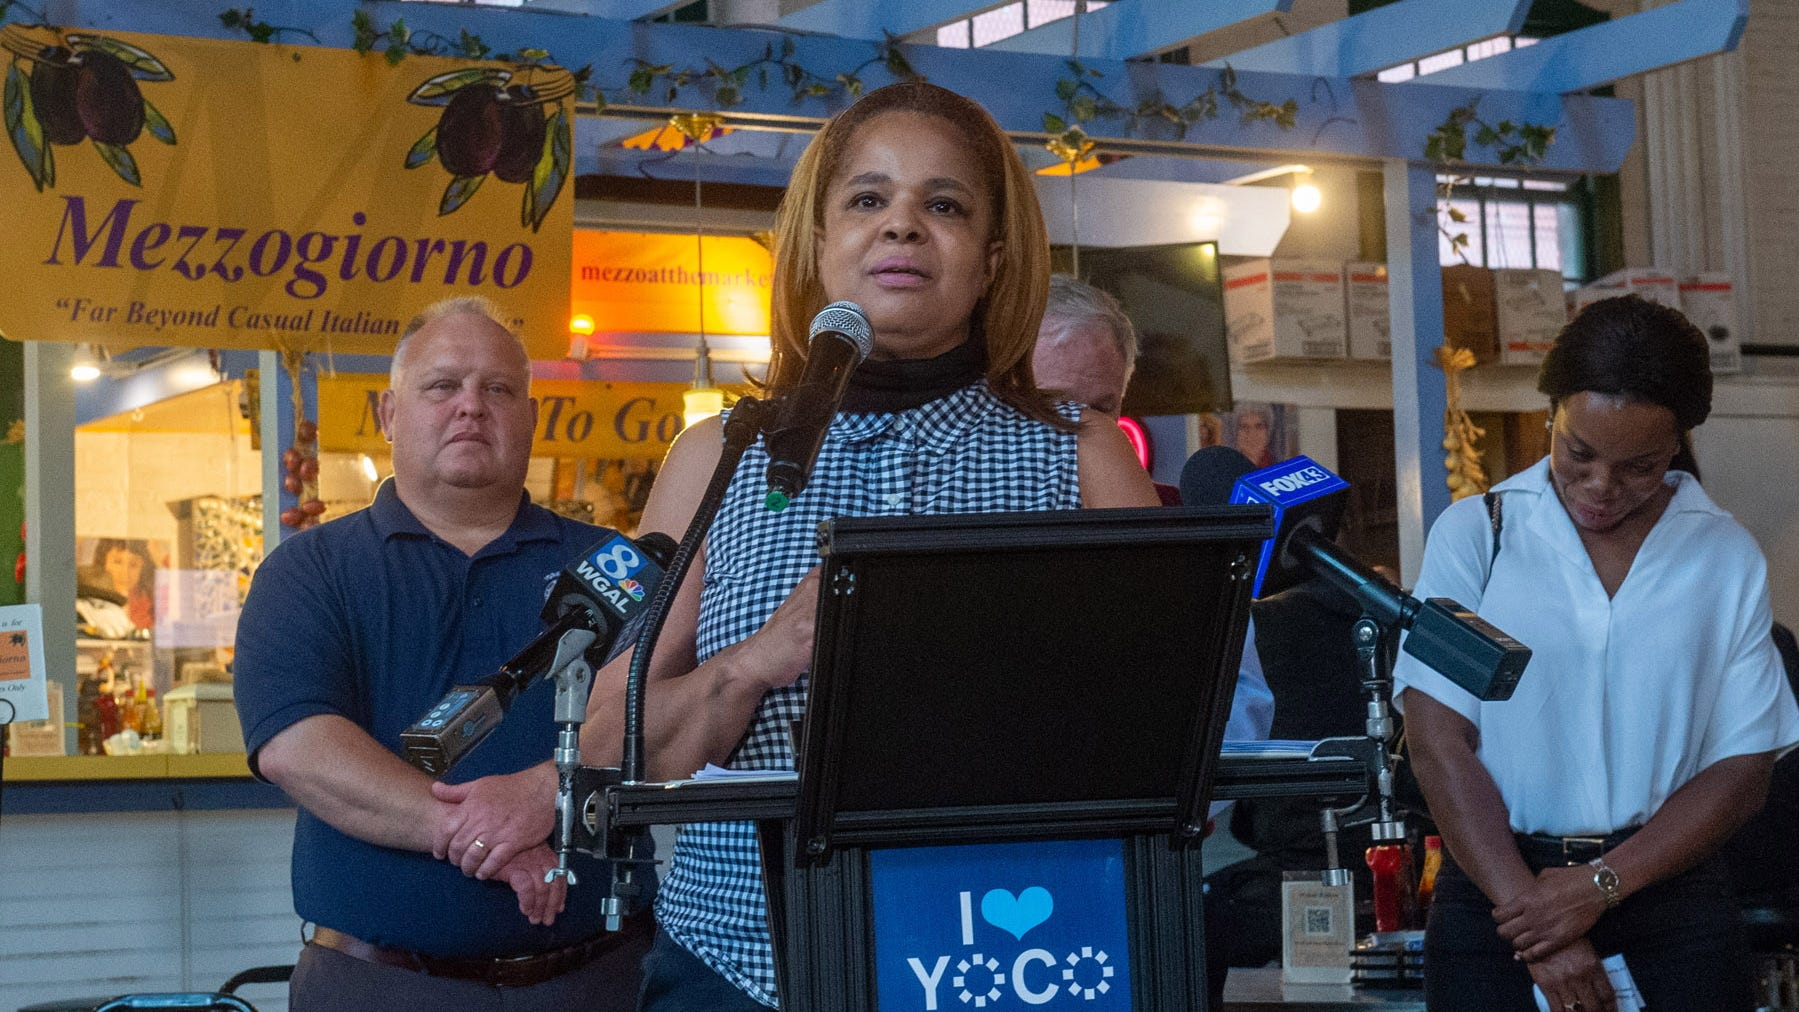 York County businesses, restaurants to share $6.4 million CHIRP grants